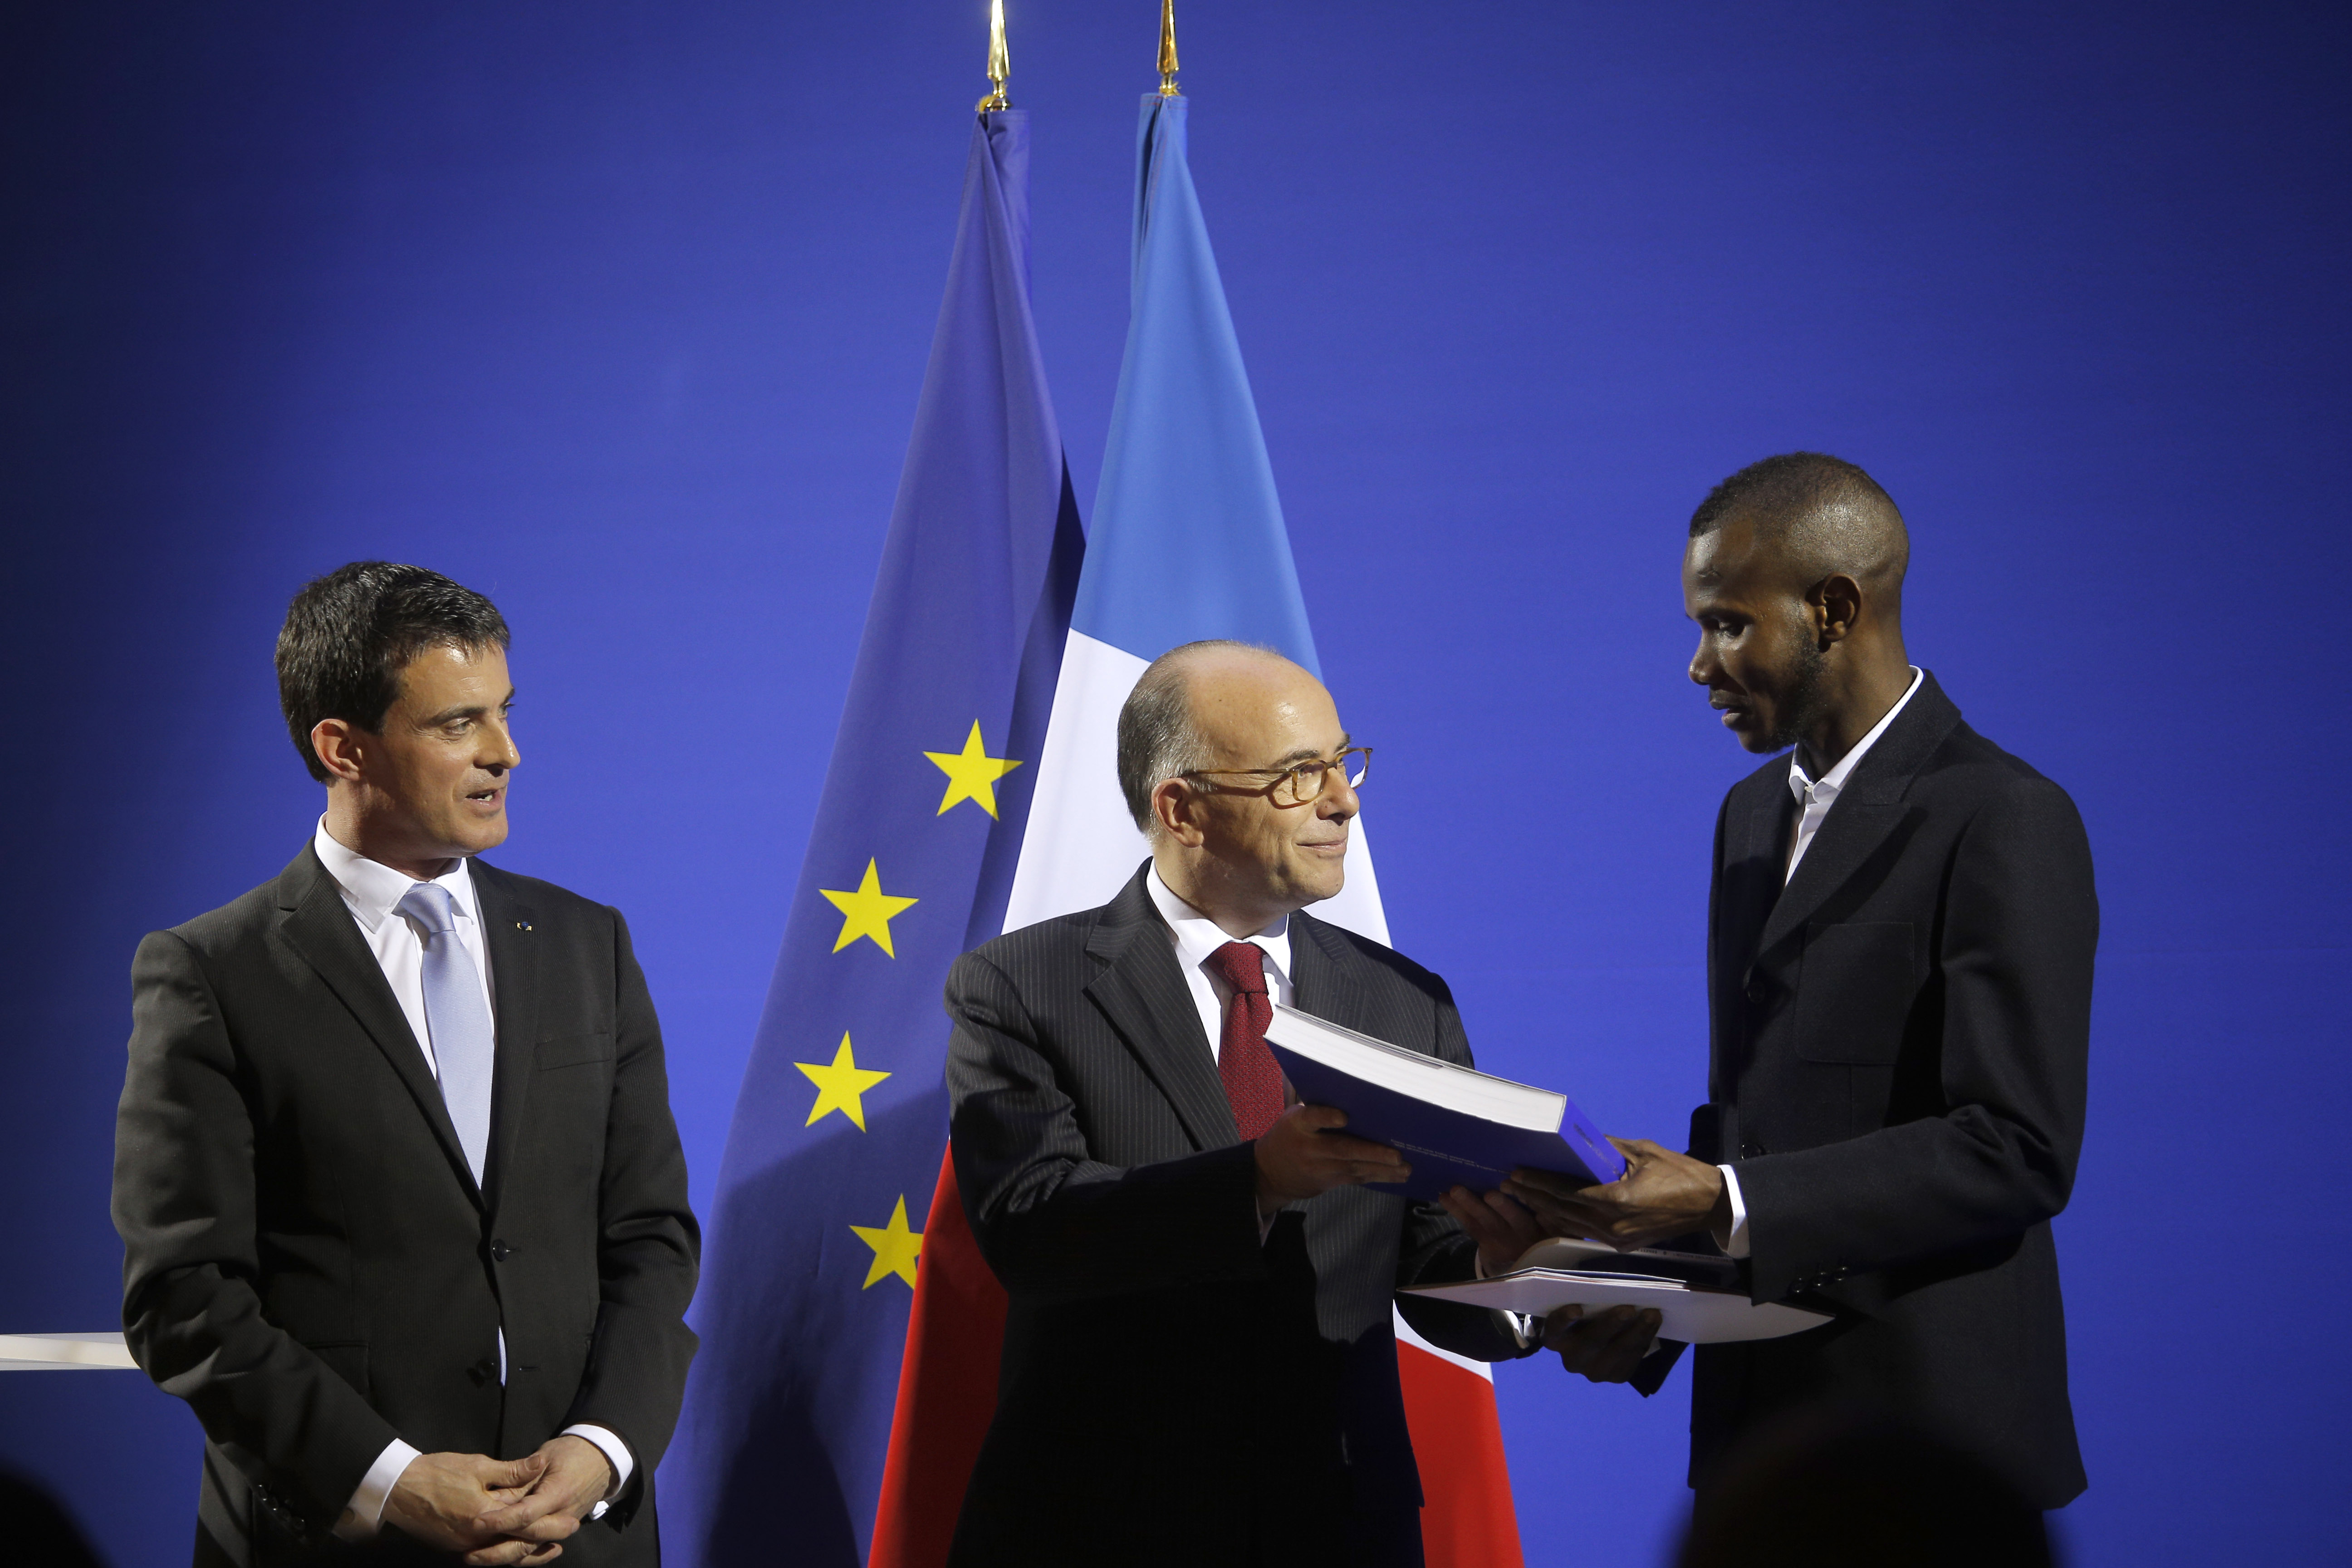 French Prime Minister Manuel Valls (L) and French Interior Minister Bernard Cazeneuve (C) award citizenship to Lassana Bathily in Paris, France, on Jan. 20, 2015.